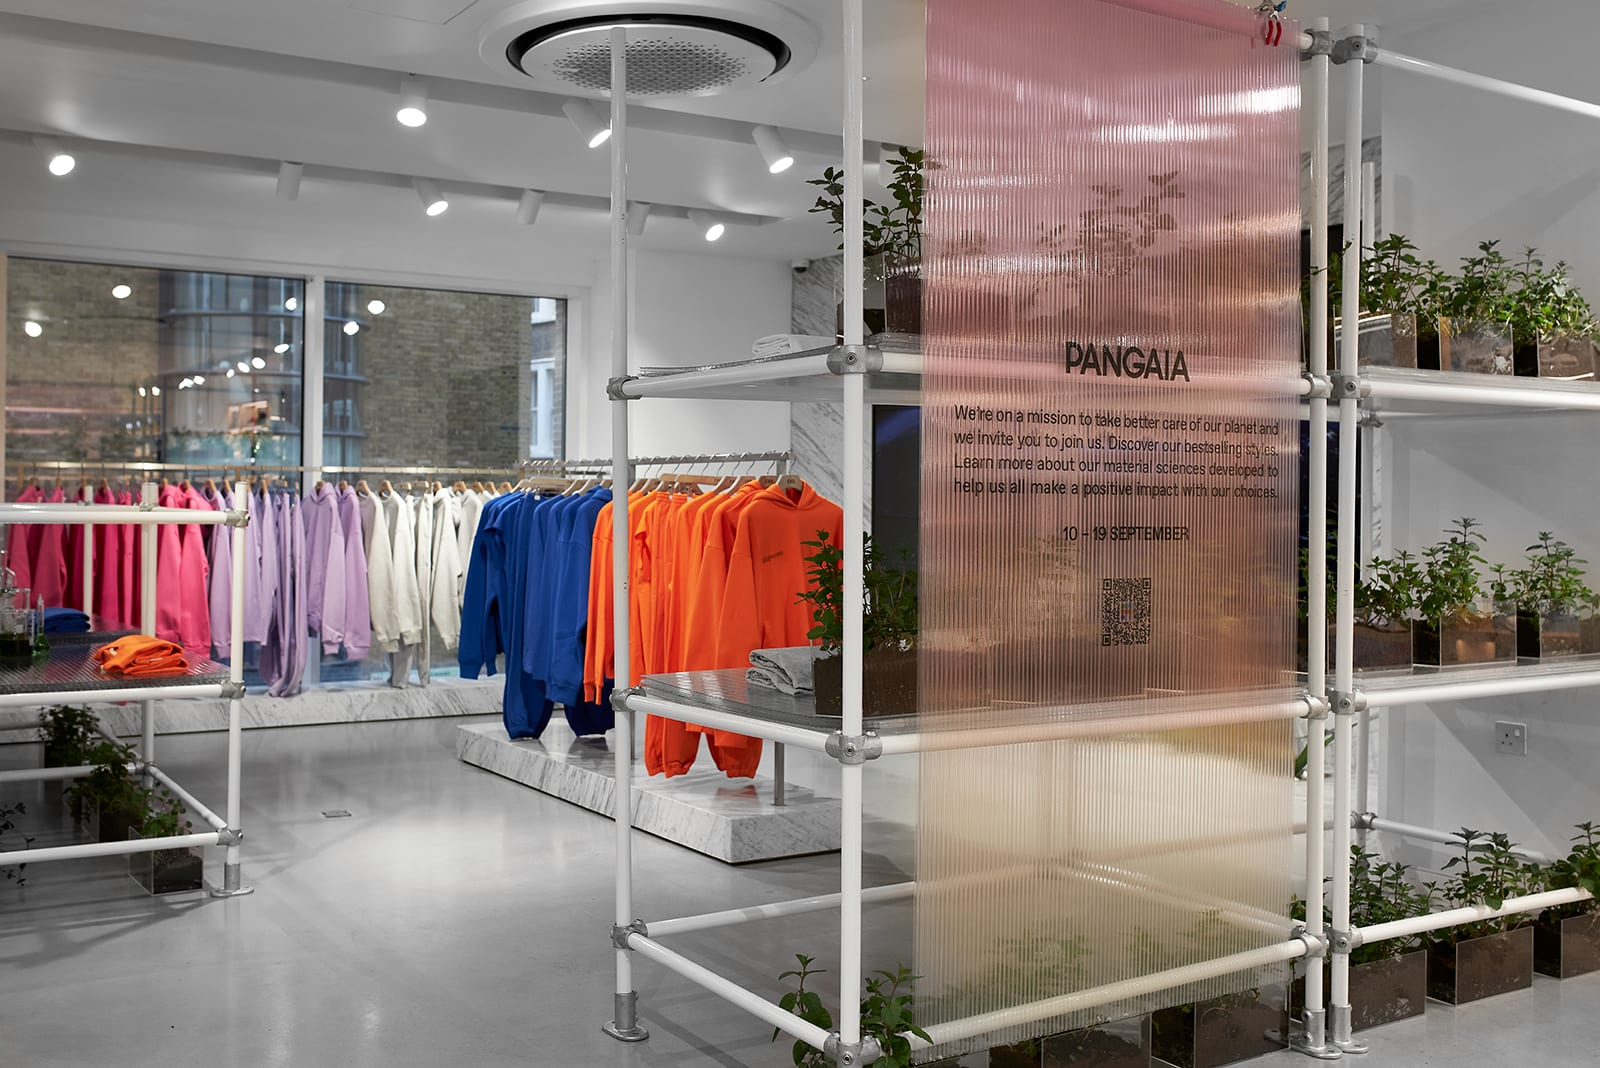 PANGAIA Lands At Our London Flagship Store